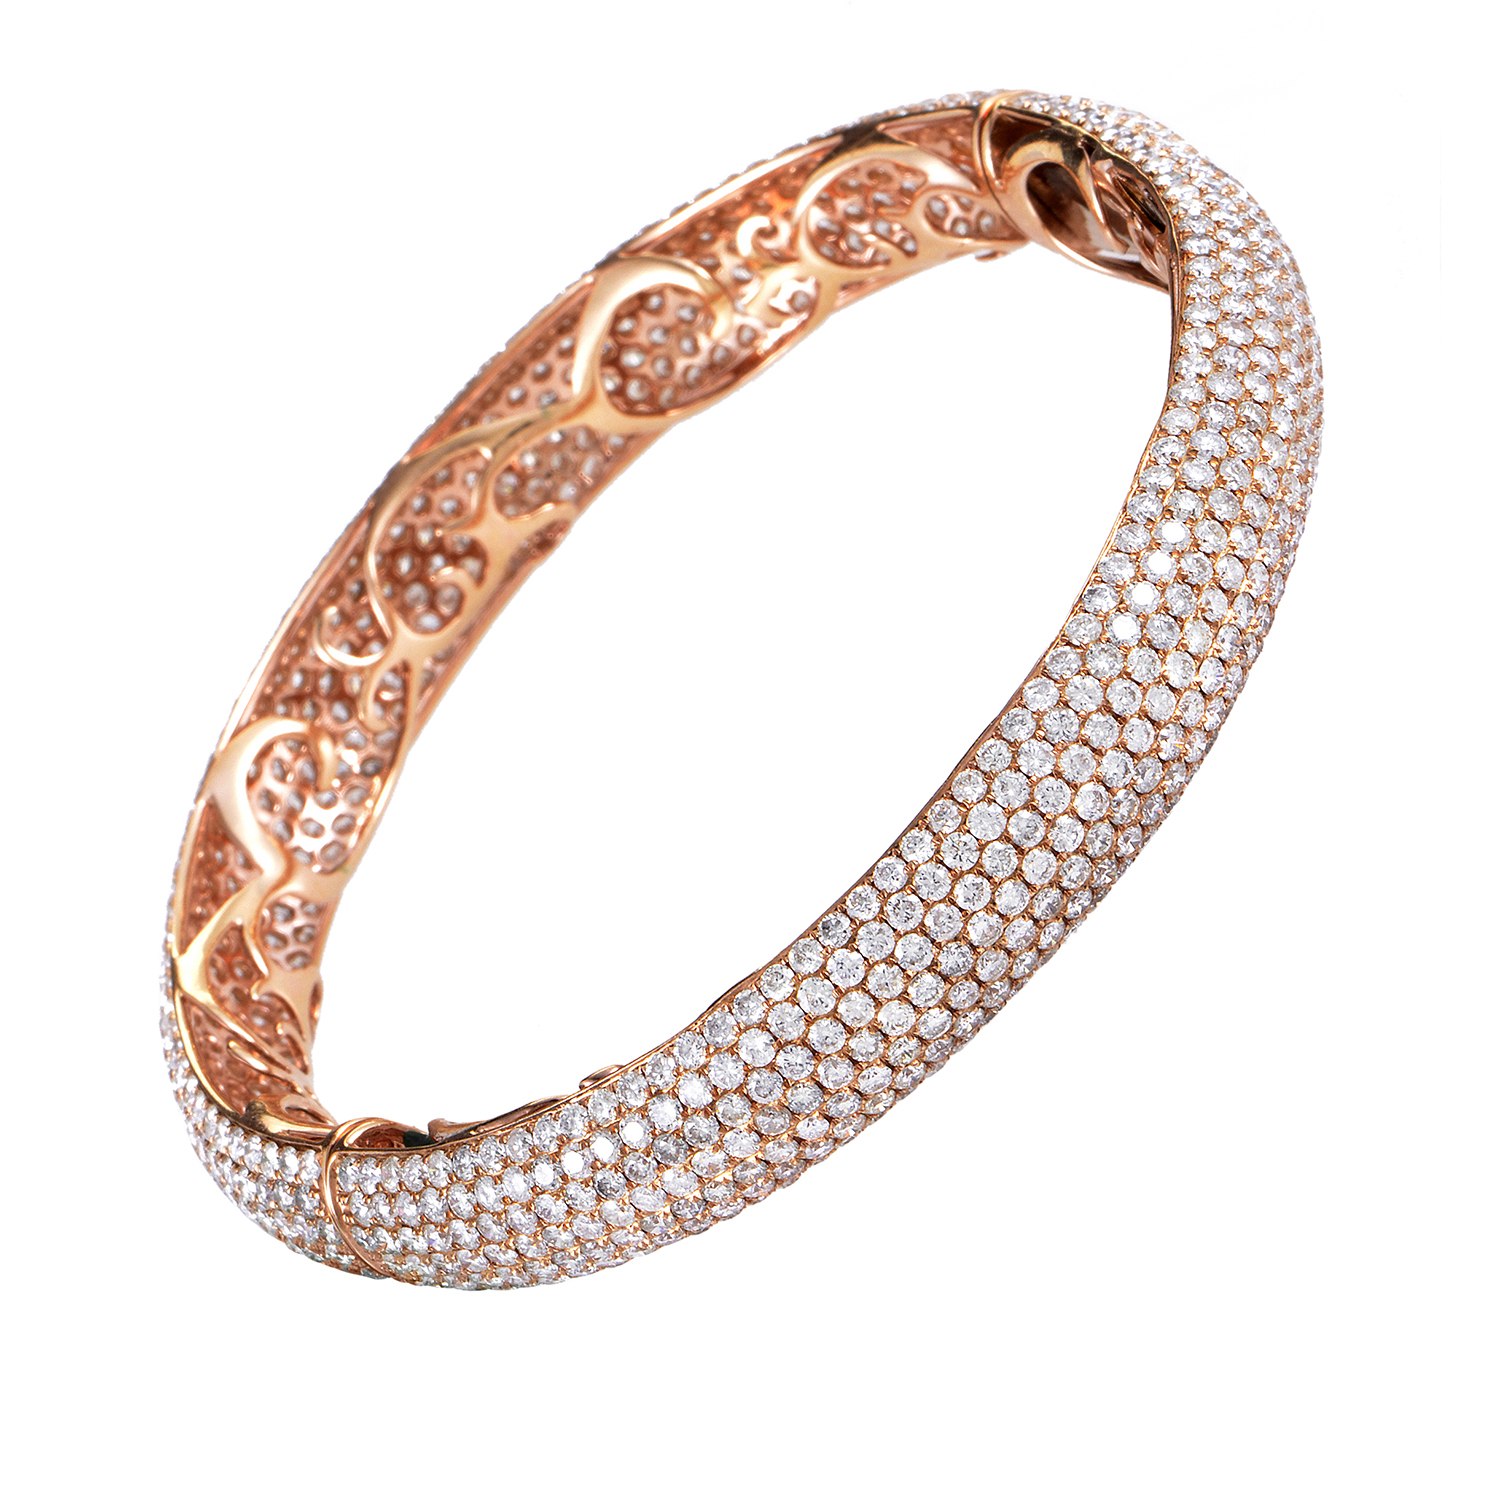 18K Rose Gold Diamond Pave Bangle Bracelet BT41841RRZ